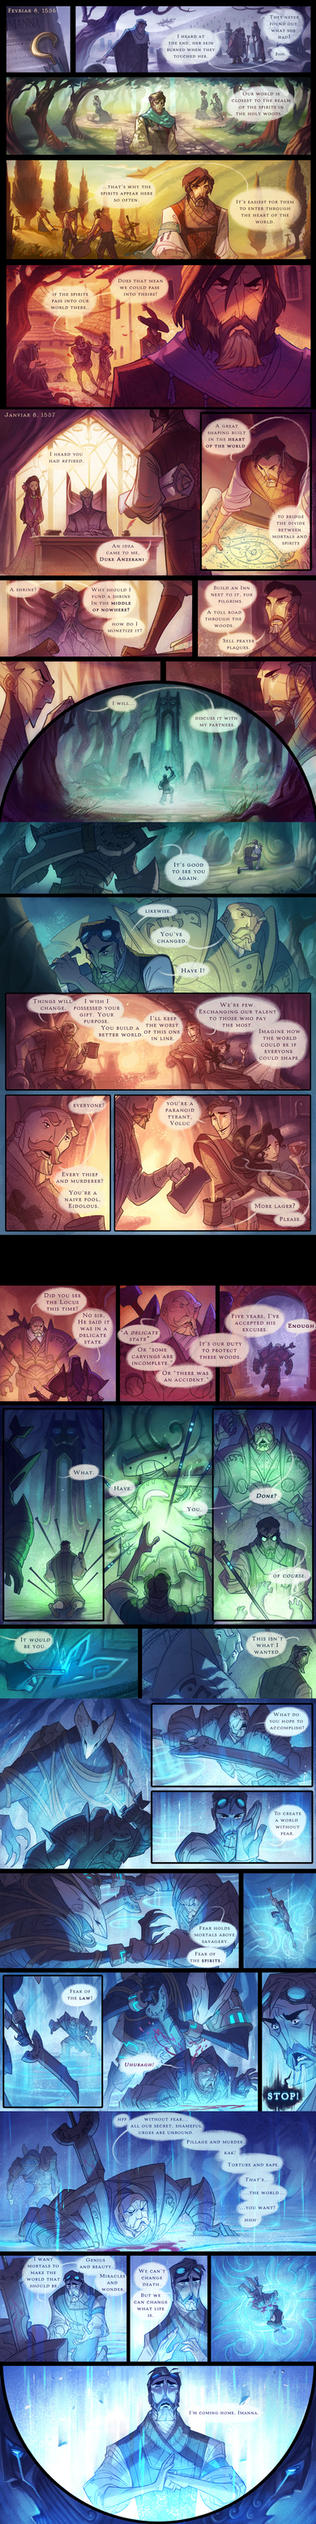 The Dawngate Chronicles - Prologue Part 2 by nicholaskole